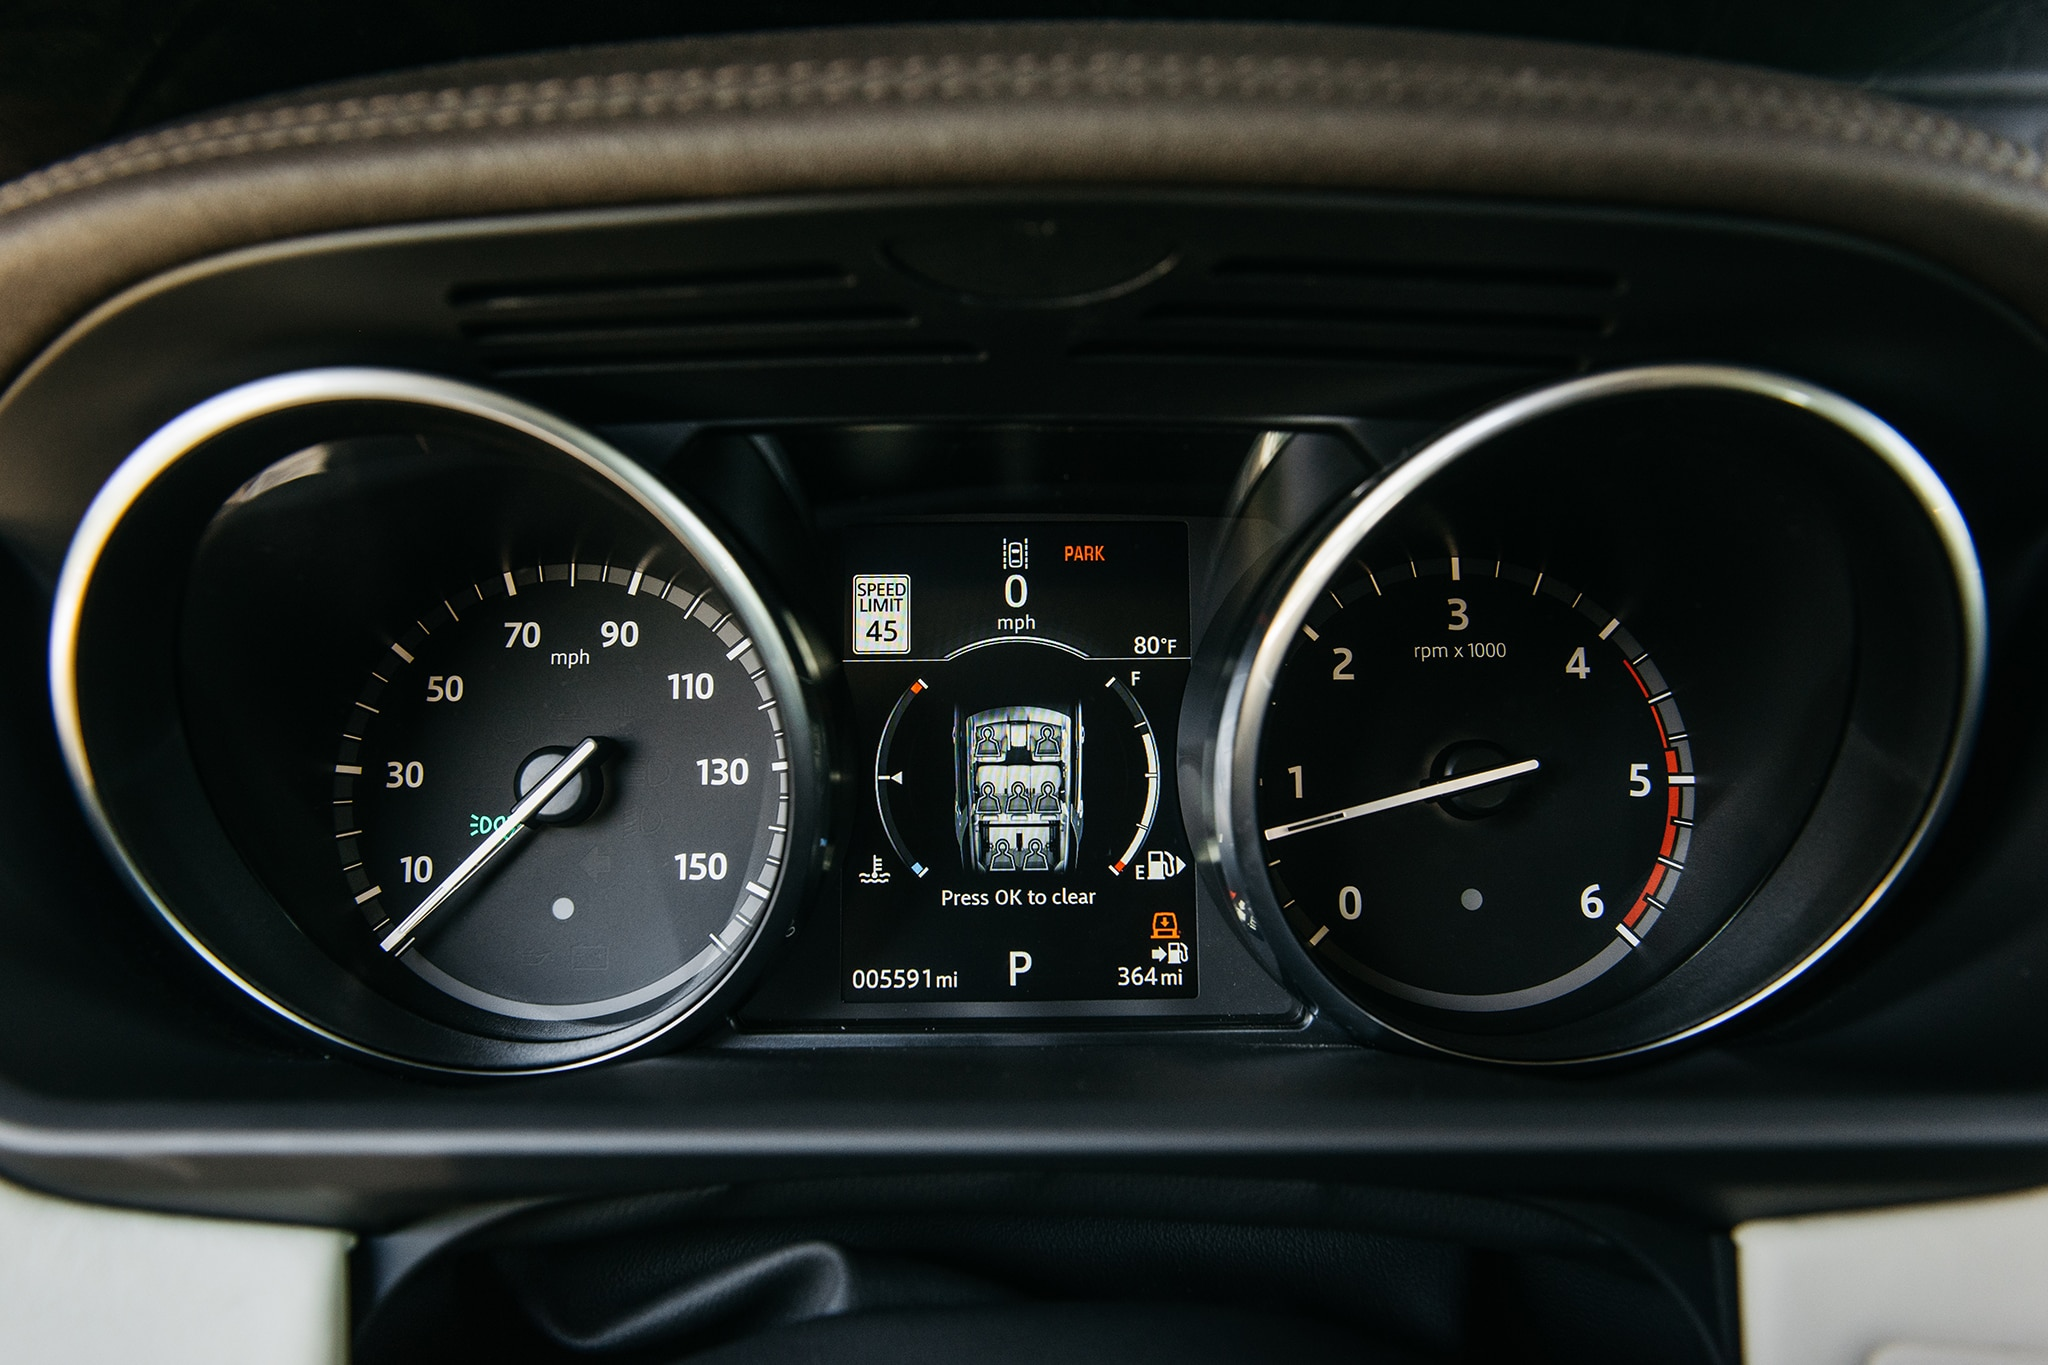 2017 Land Rover Discovery Td6 HSE Speedometer